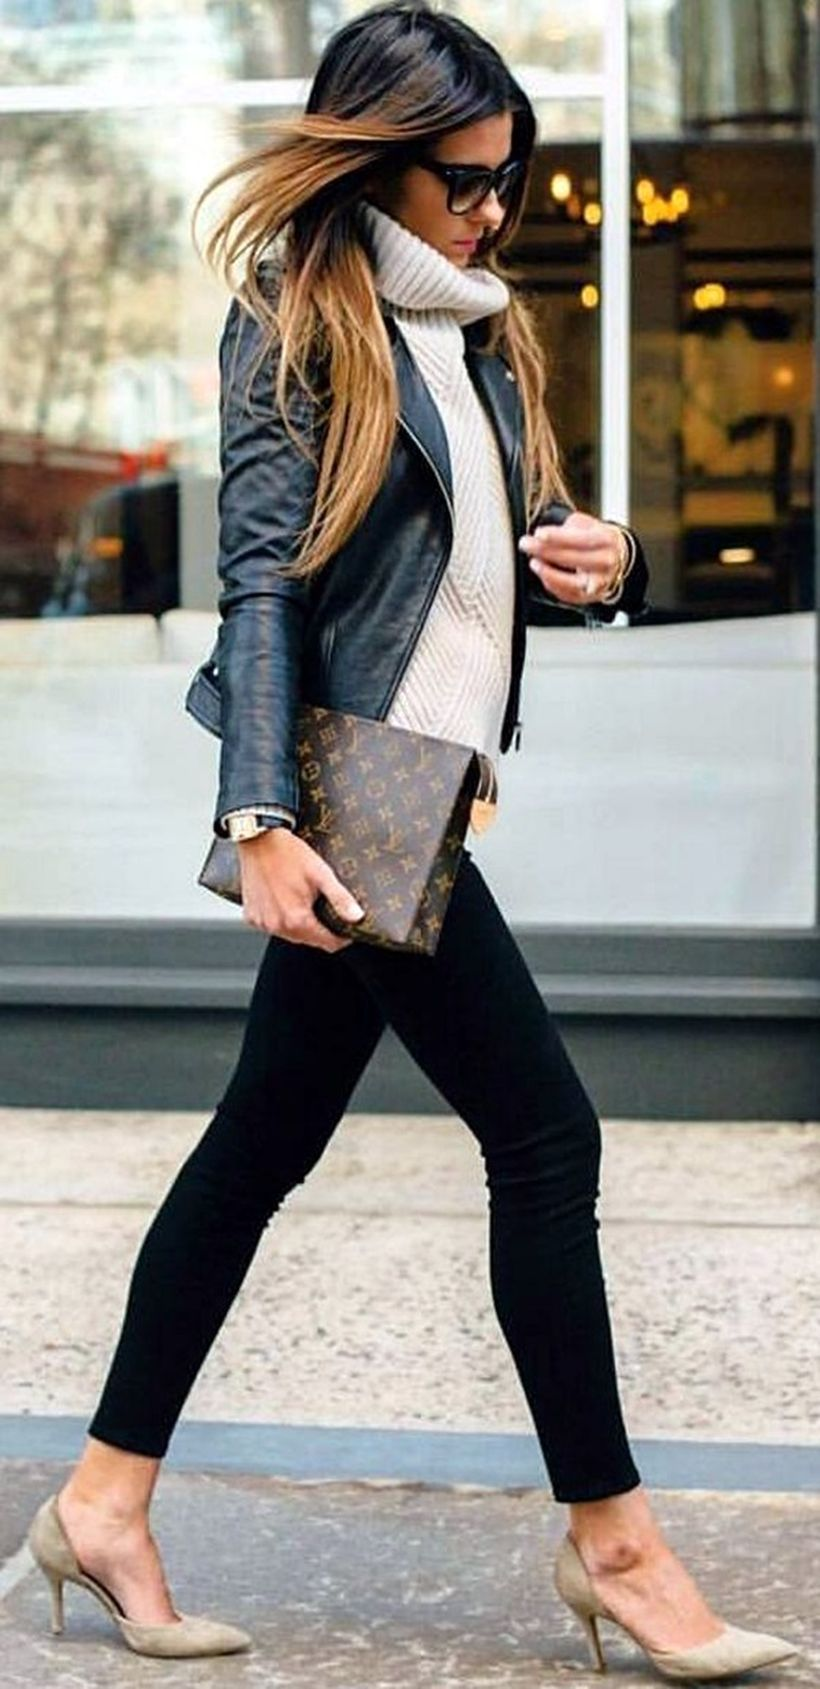 75 fashionable 2017 fall fashions trend inspirations for work